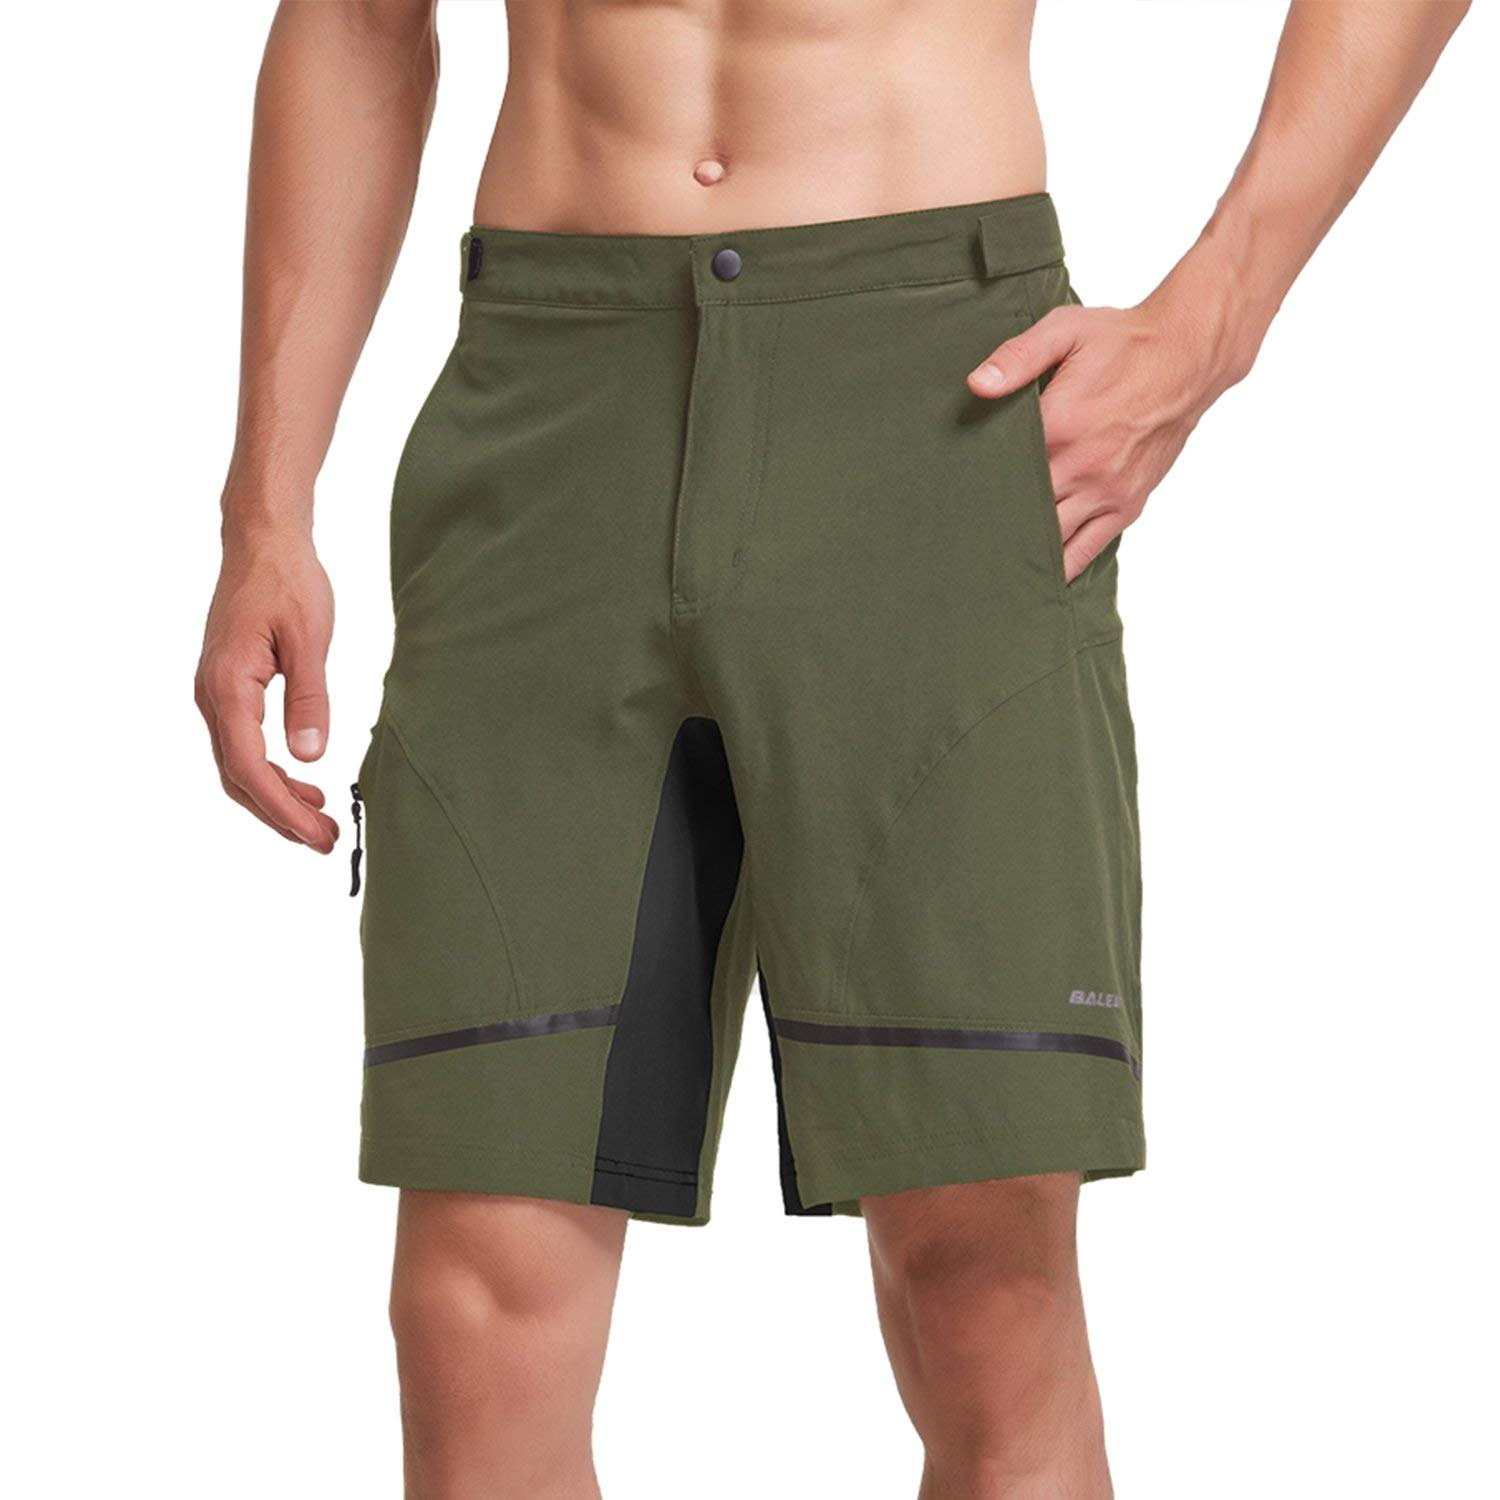 BALEAF Men's Hiking Shorts Lightweight Quick Dry UPF 50+ Cycling Shorts for MTB, Camping, Travel